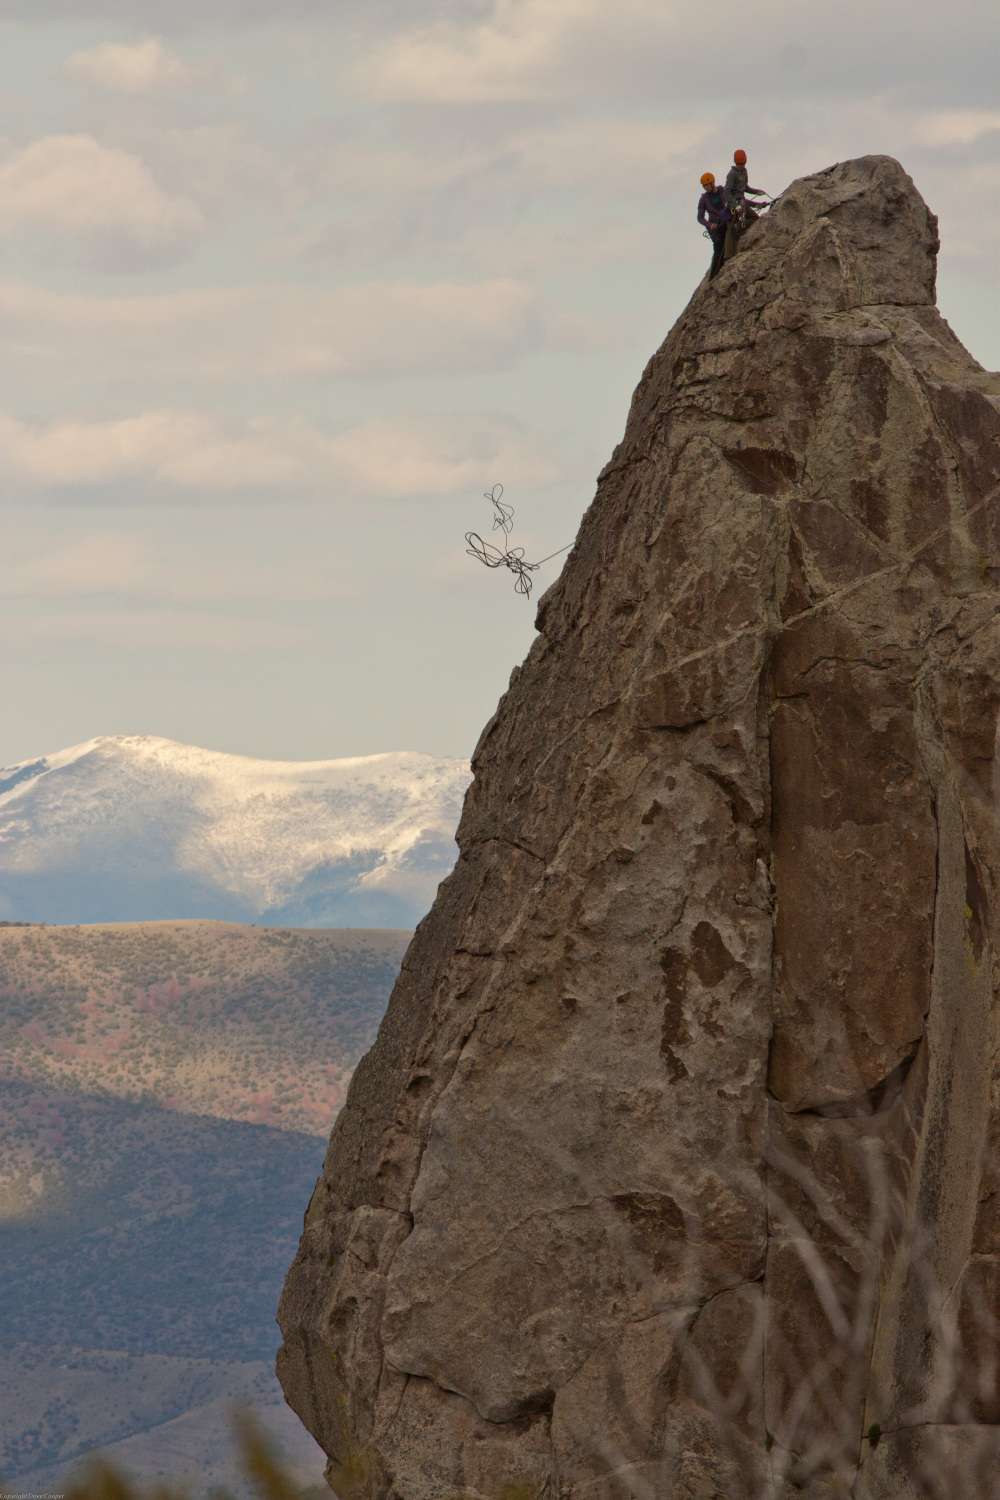 Climbers on the Incisor - City of Rocks